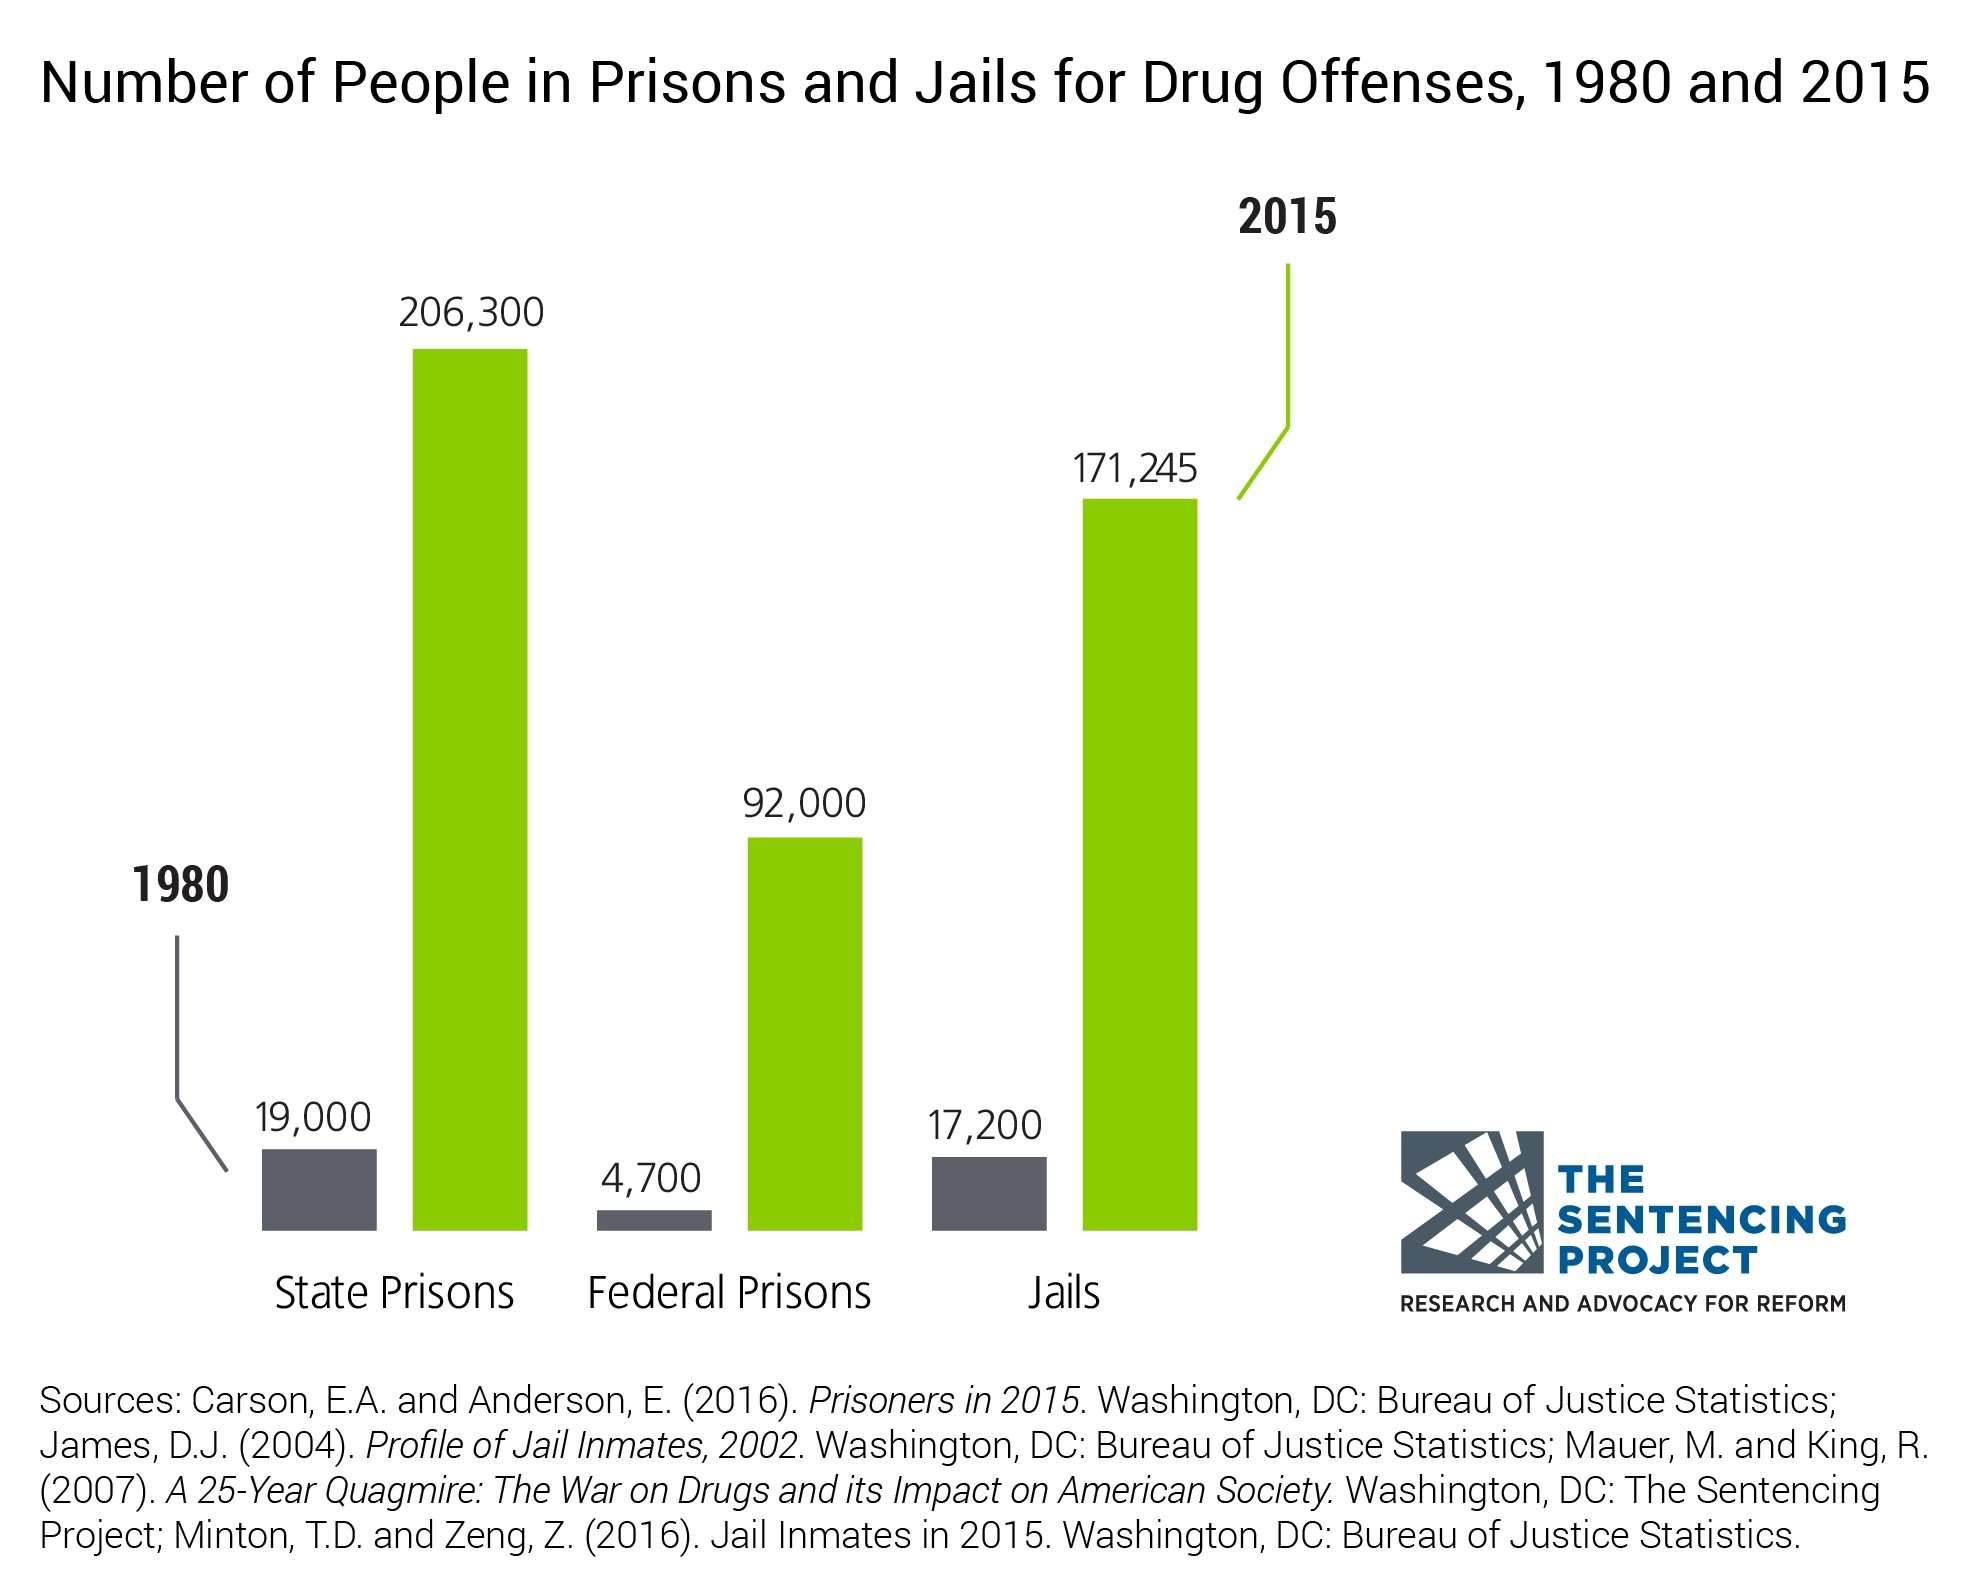 Figure 2: No. of People in Prisons and Jails for Drug Offenses, 1980-2015 chart